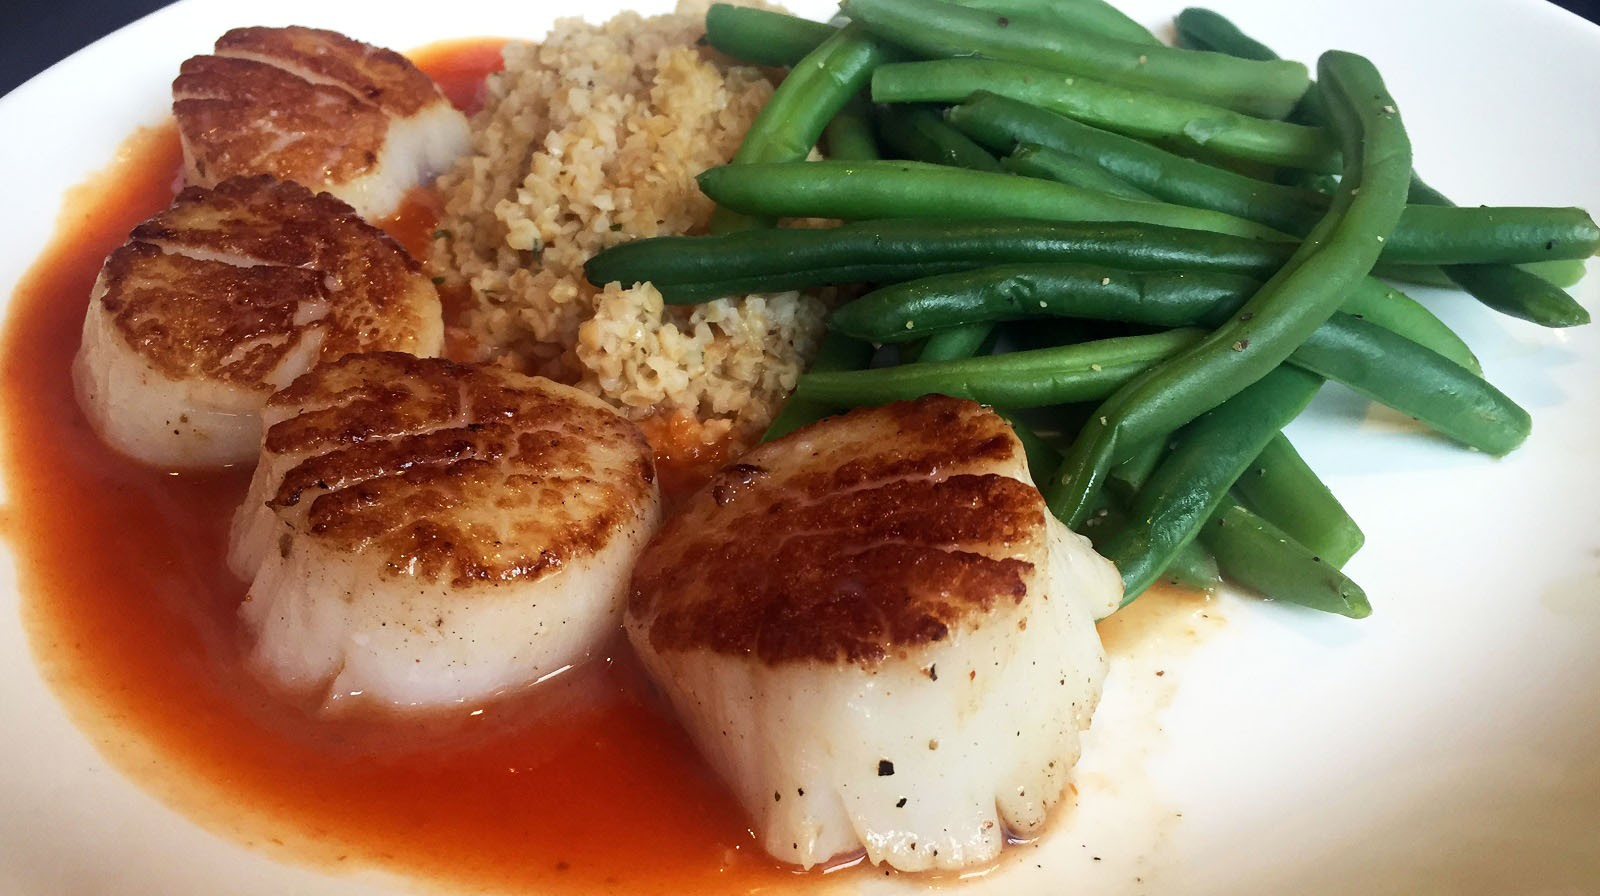 Seared scallops, an entree from The Pub by Wegmans, run for $24 and include green beans and bulgur wheat salad. (Lizz Schumer/Special to The News)